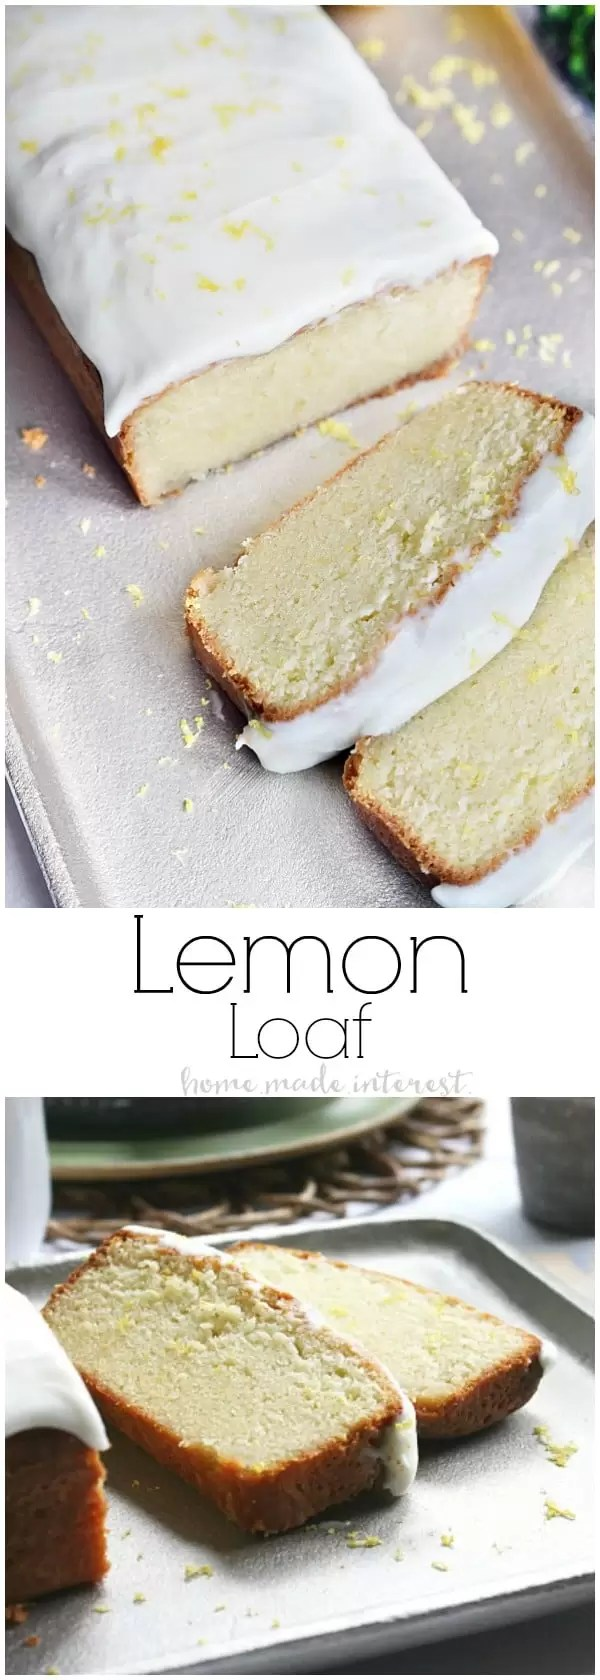 This Lemon Loaf is a Starbucks copycat recipe that doubles as a great easy dessert recipe and a simple brunch recipe. I made this lemon loaf recipe for a recent brunch where we served lattes and made simple teacher appreciation gifts with a cute Thanks A Latte gift tag. I've shared the free coffee printables including a free printable lemon loaf recipe card. These make a great homemade Christmas gift too!